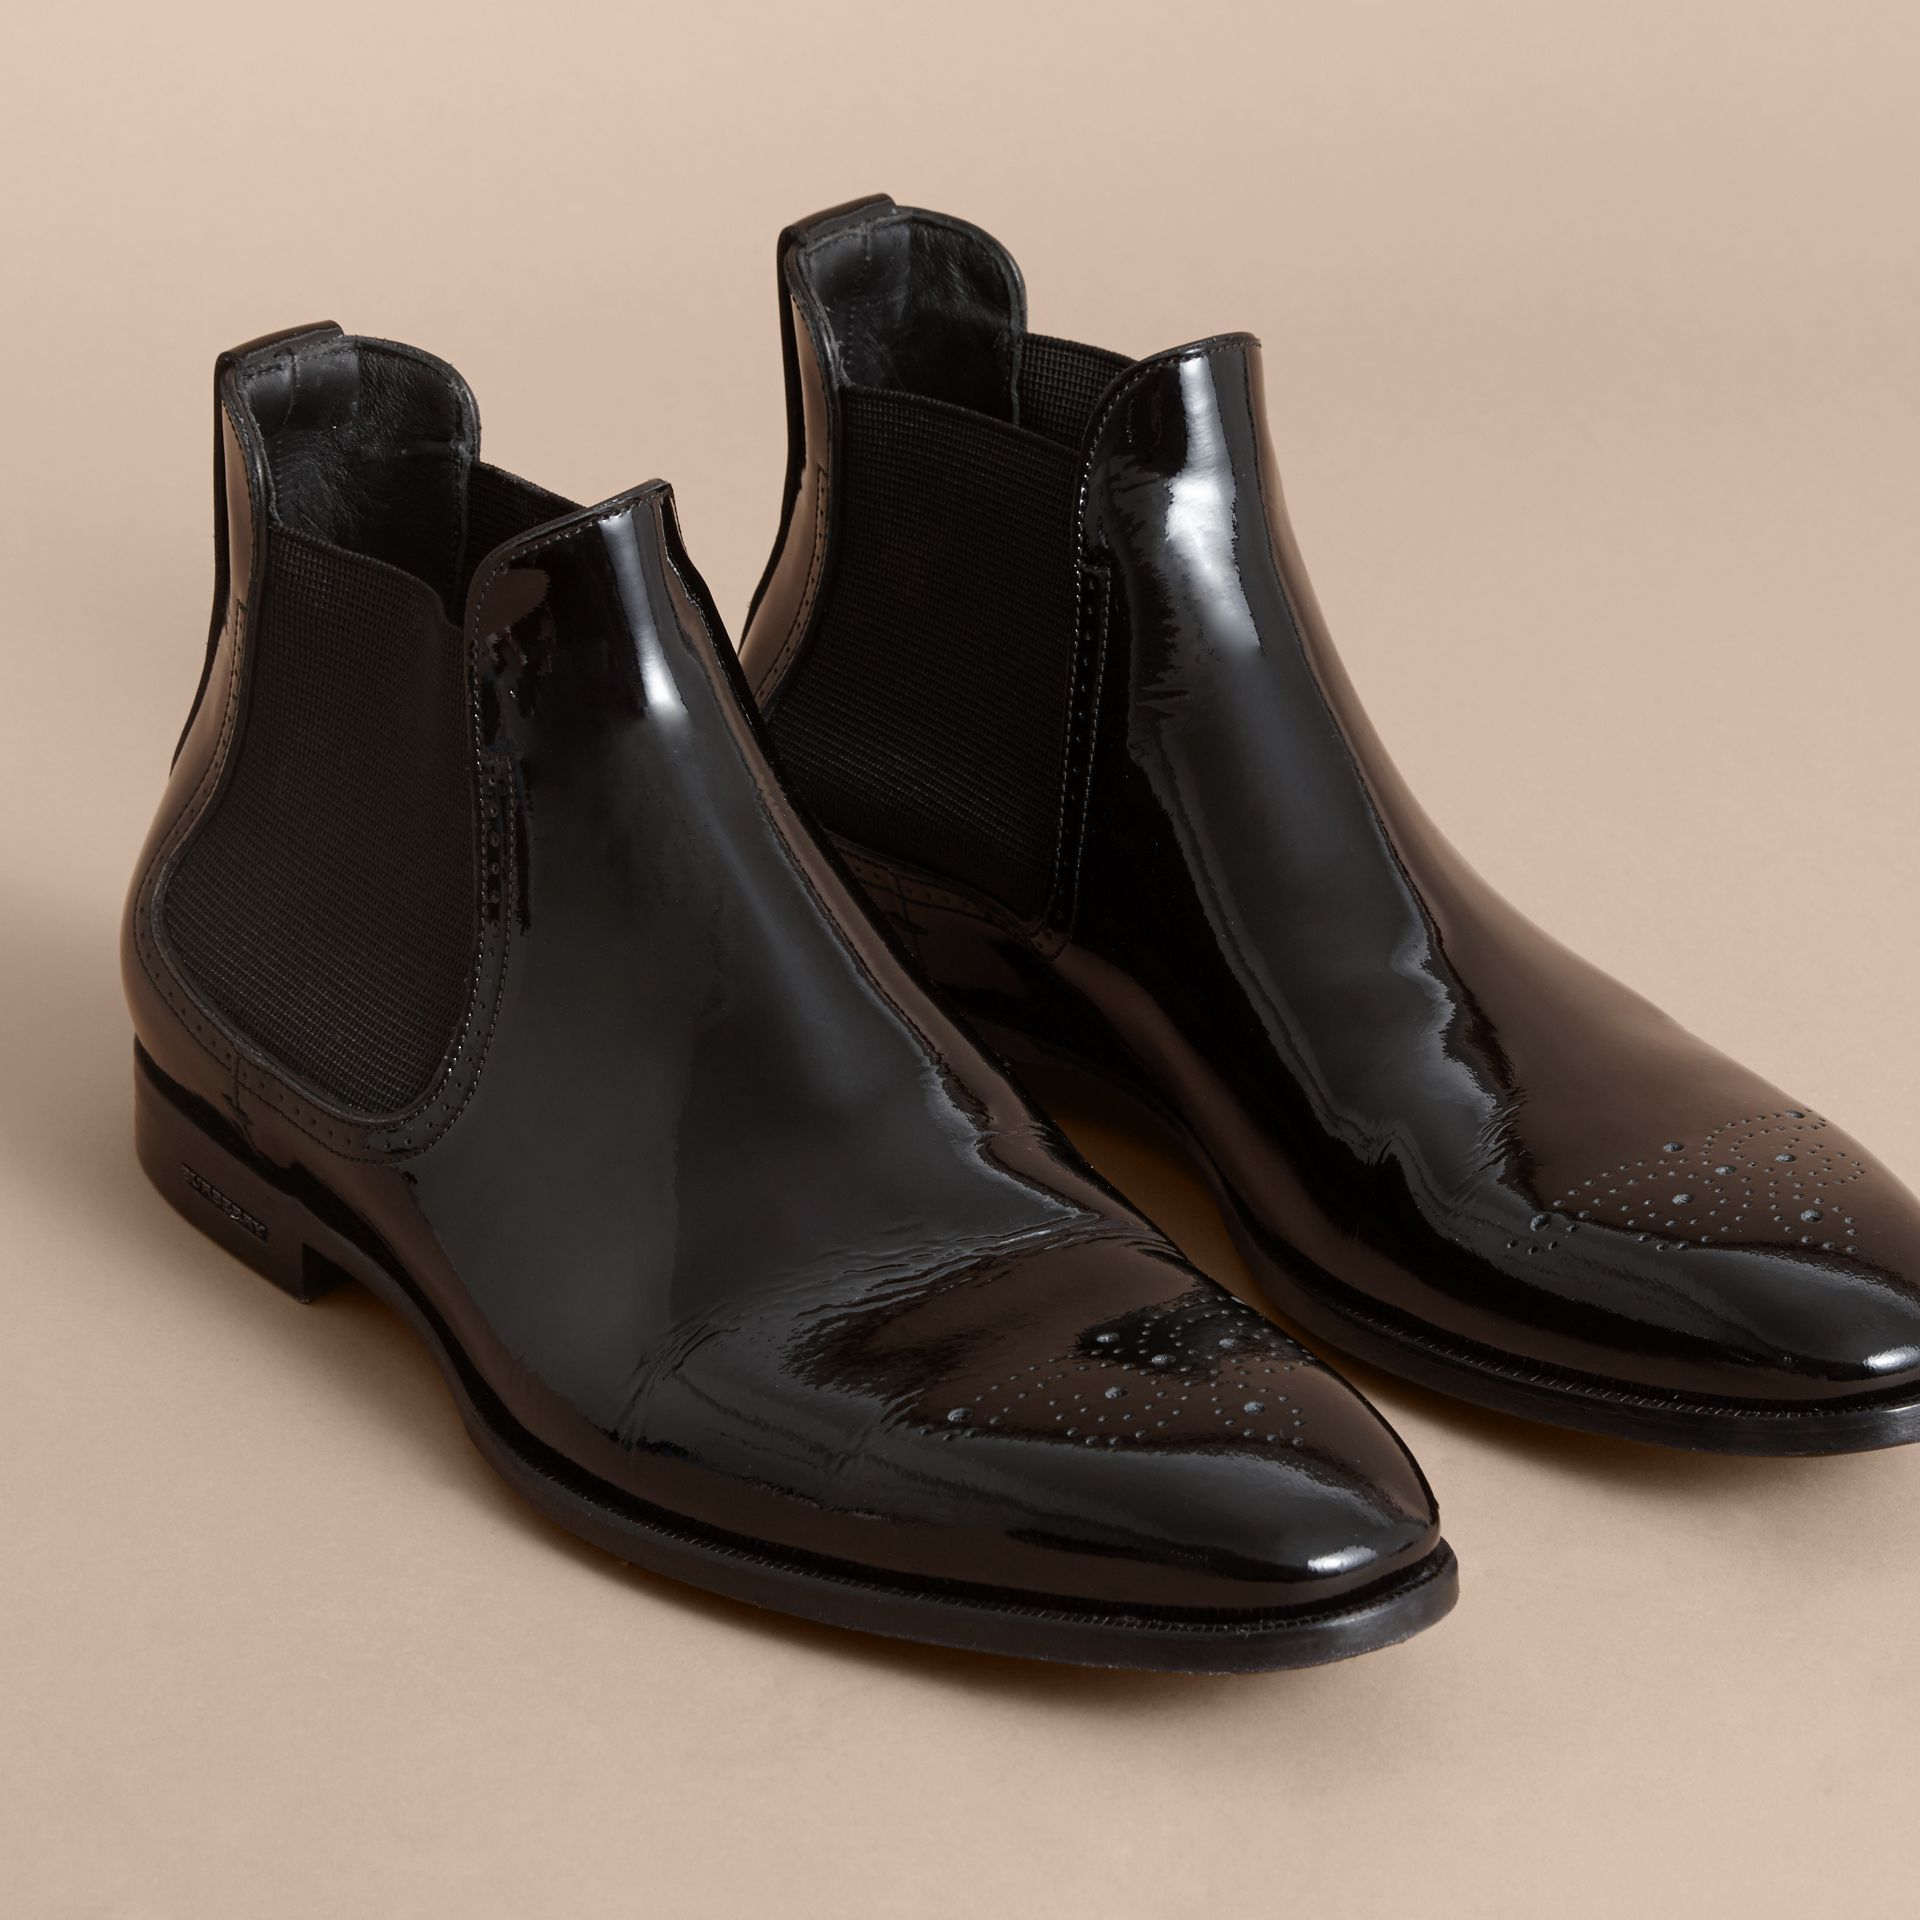 Polished Leather Chelsea Boots in Black - Men | Burberry Singapore - gallery image 4